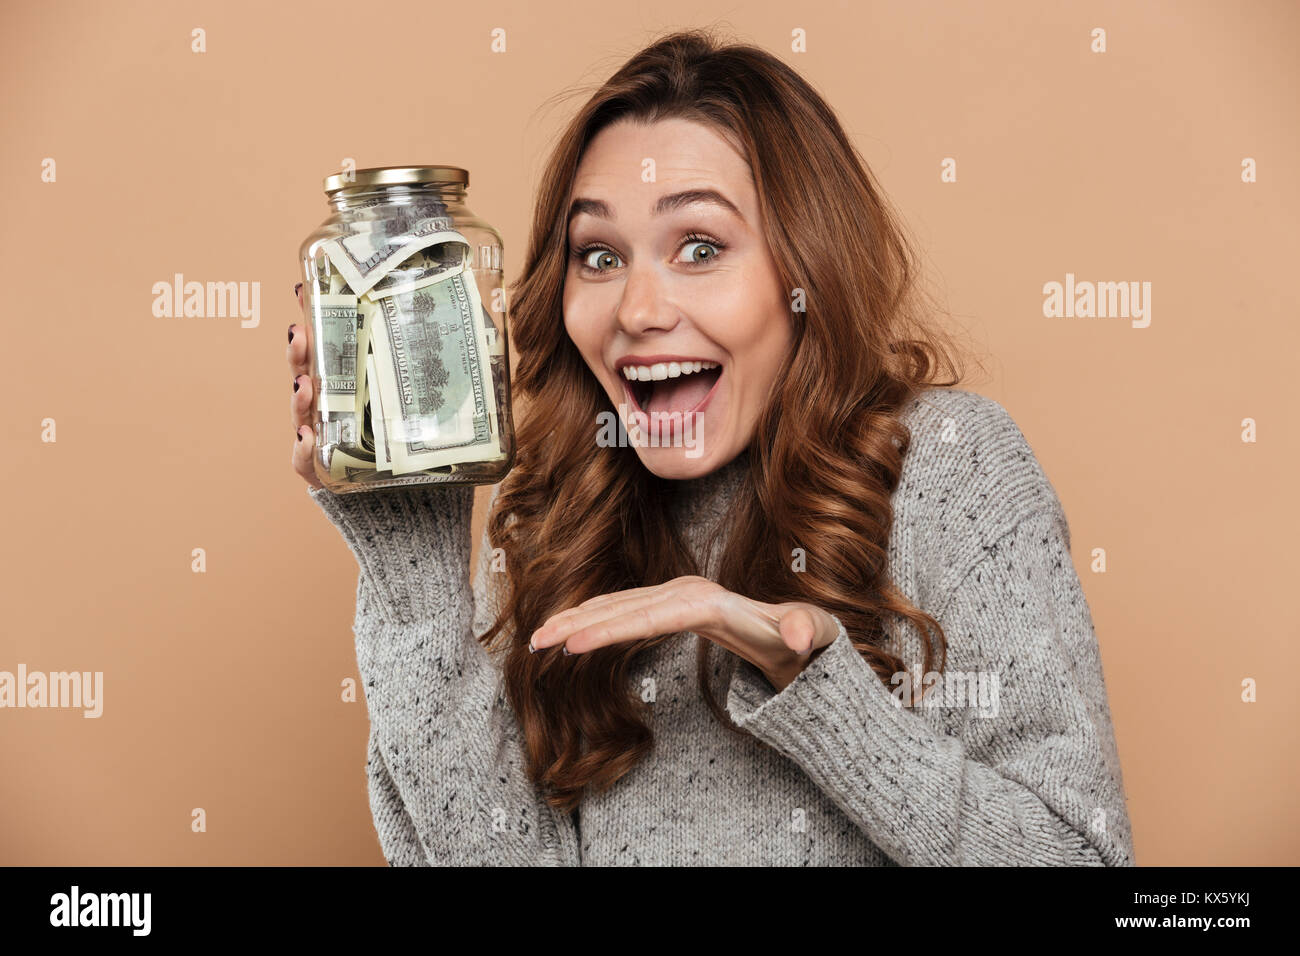 Happy brunette girl in gray jersey holding bank with dollar cash, looking at camera, isolated over beige background - Stock Image